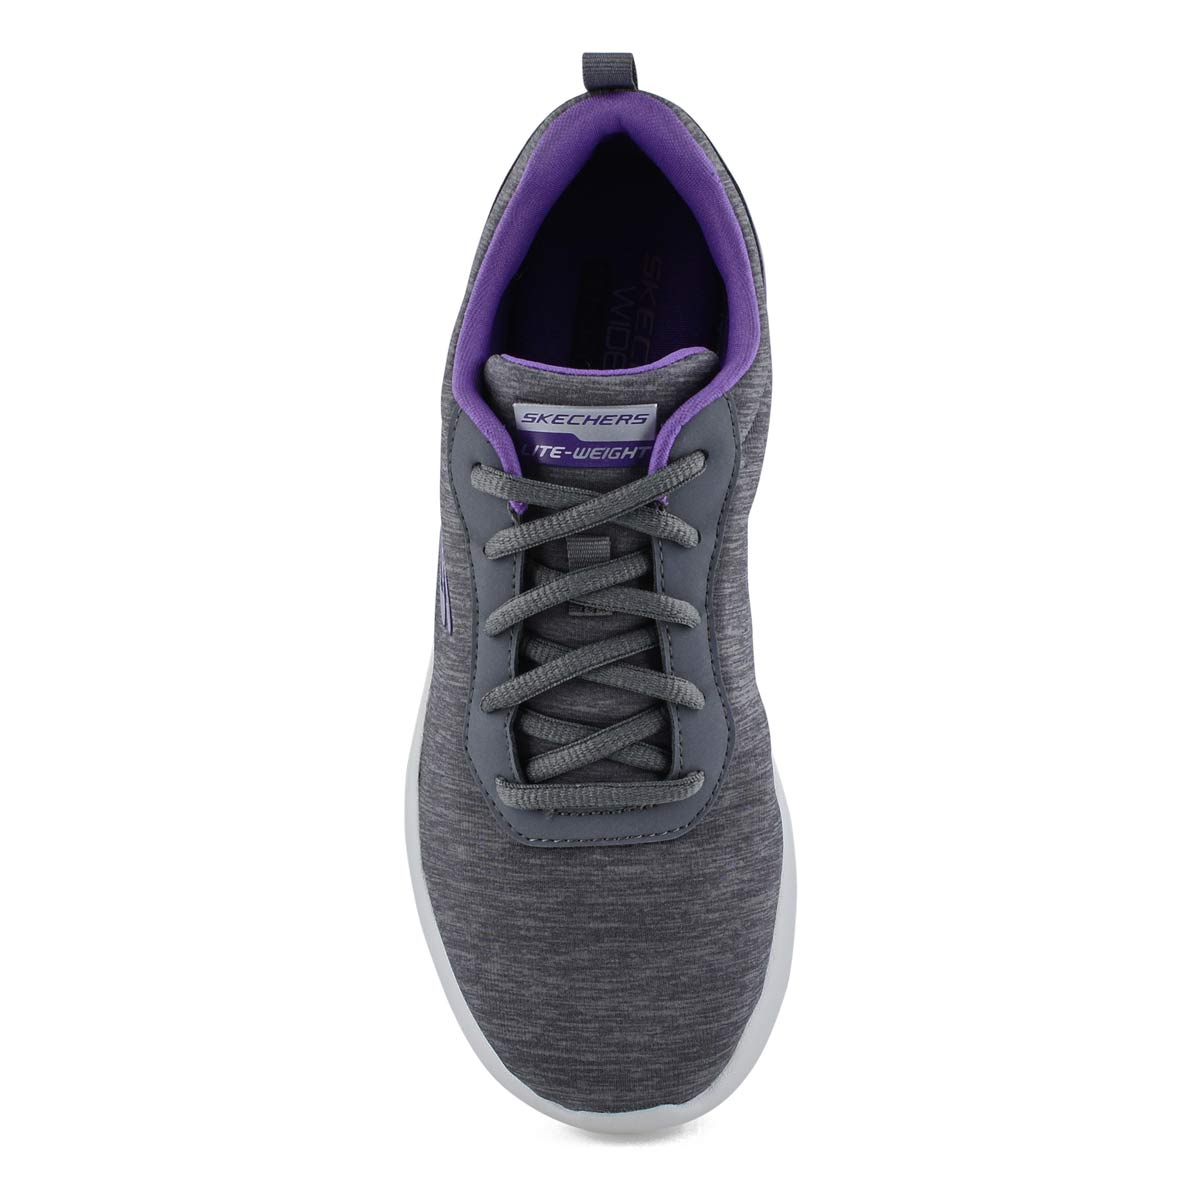 Women's Dynamite Paradise Waves Wide Sneaker